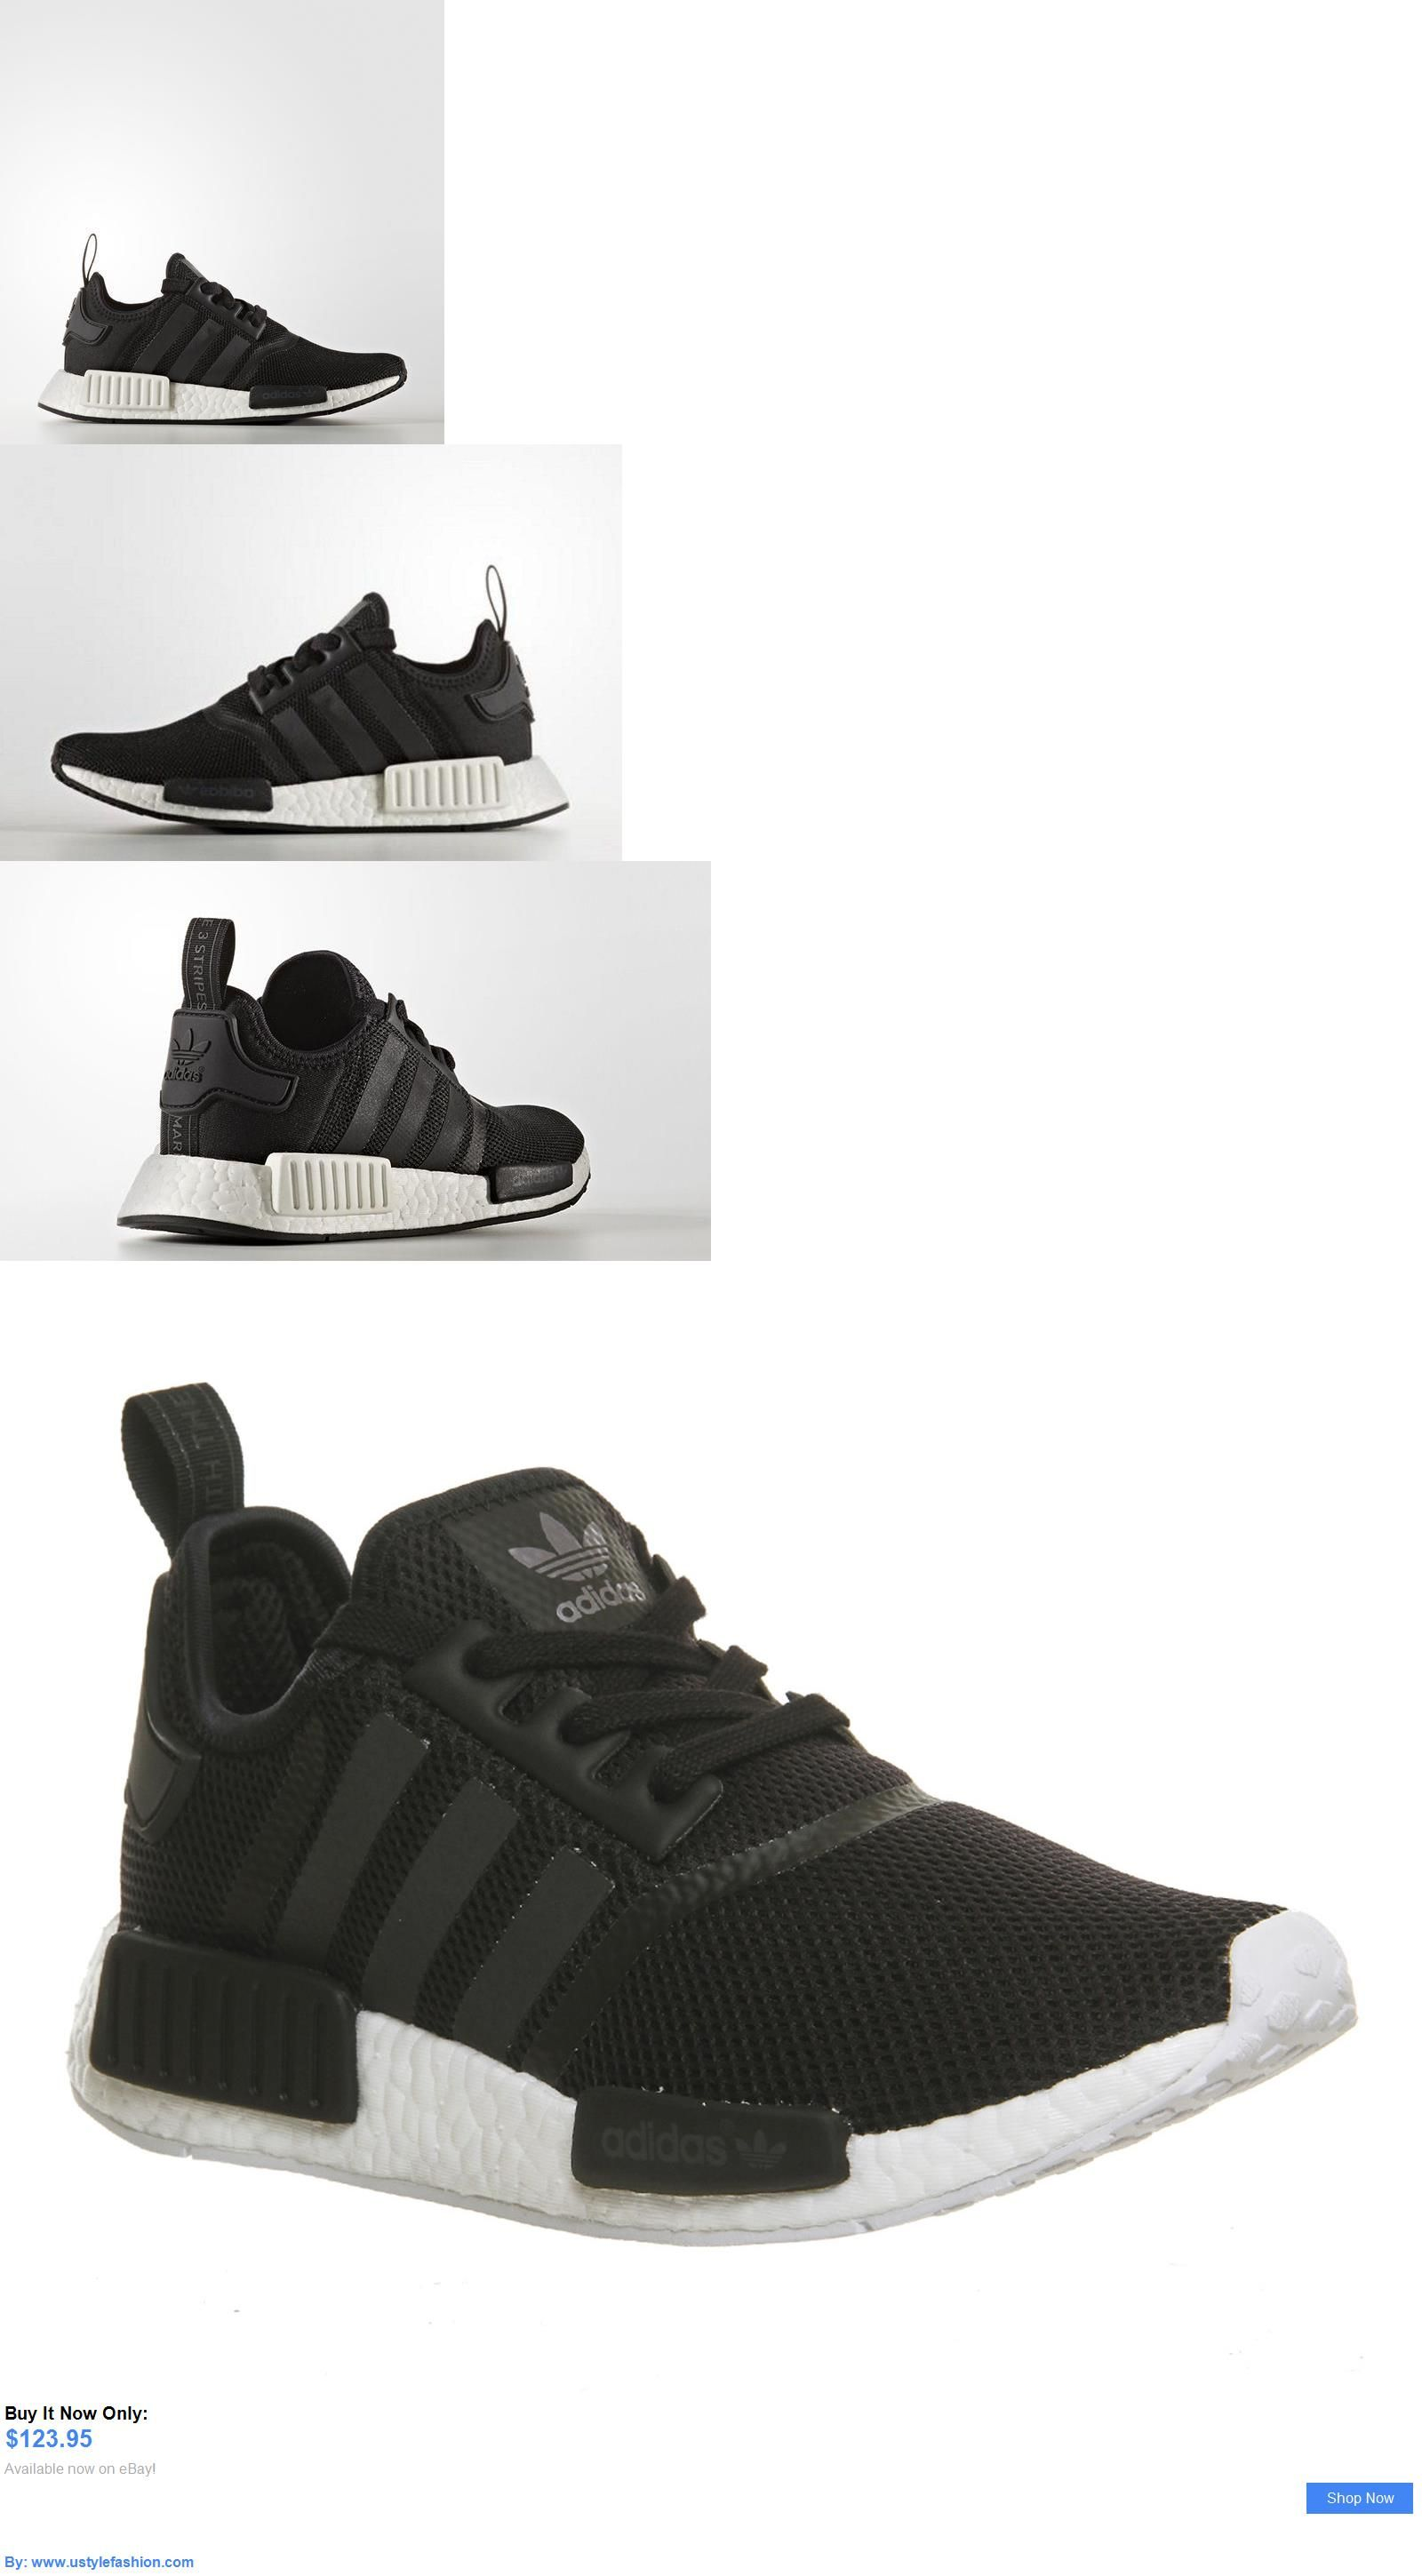 a28e80c50 Children boys clothing shoes and accessories  Adidas Nmd R1 J Core Black  White Mesh Us Boys Girl Gs Youth Nomad Junior S80206 BUY IT NOW ONLY    123.95 ...